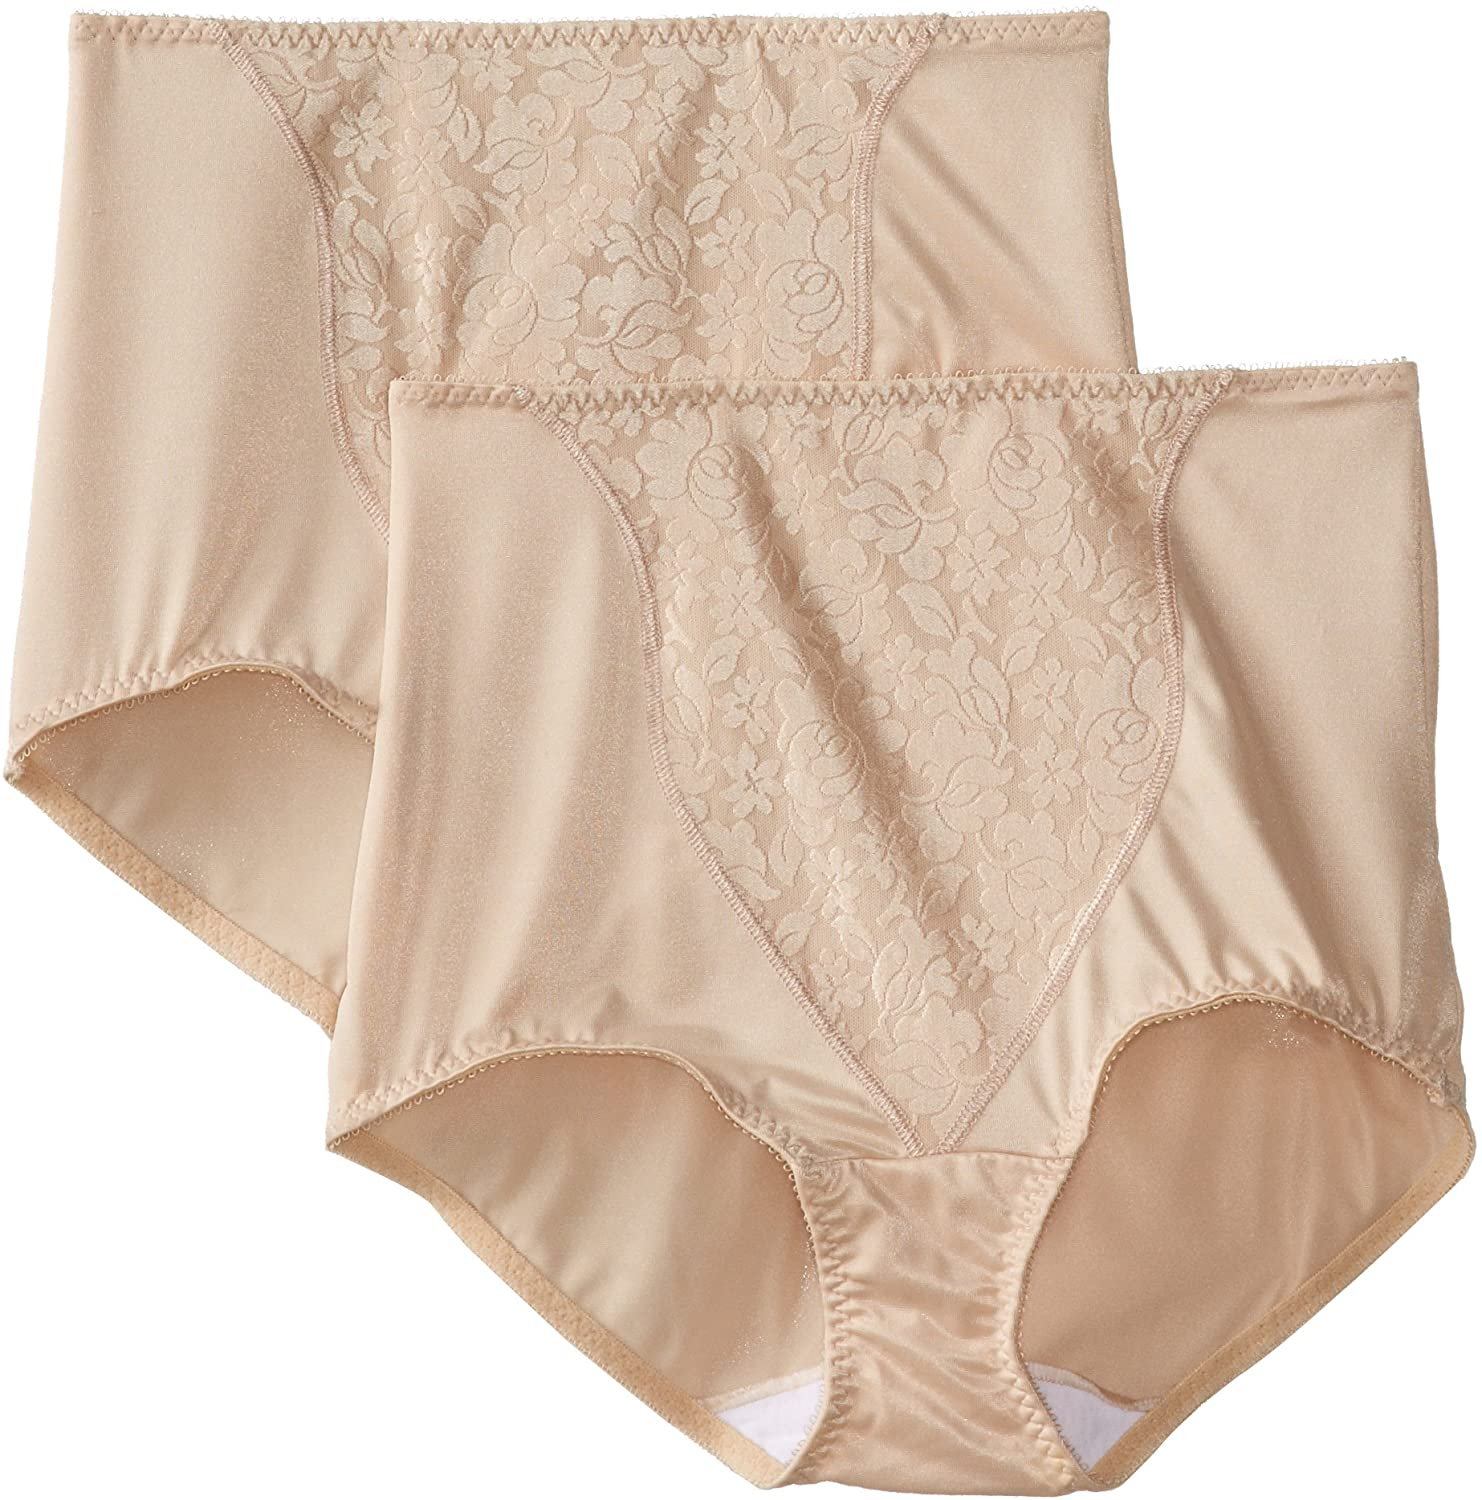 Bali Women's Shapewear Popular overseas Double Support w Brief 67% OFF of fixed price Control Light